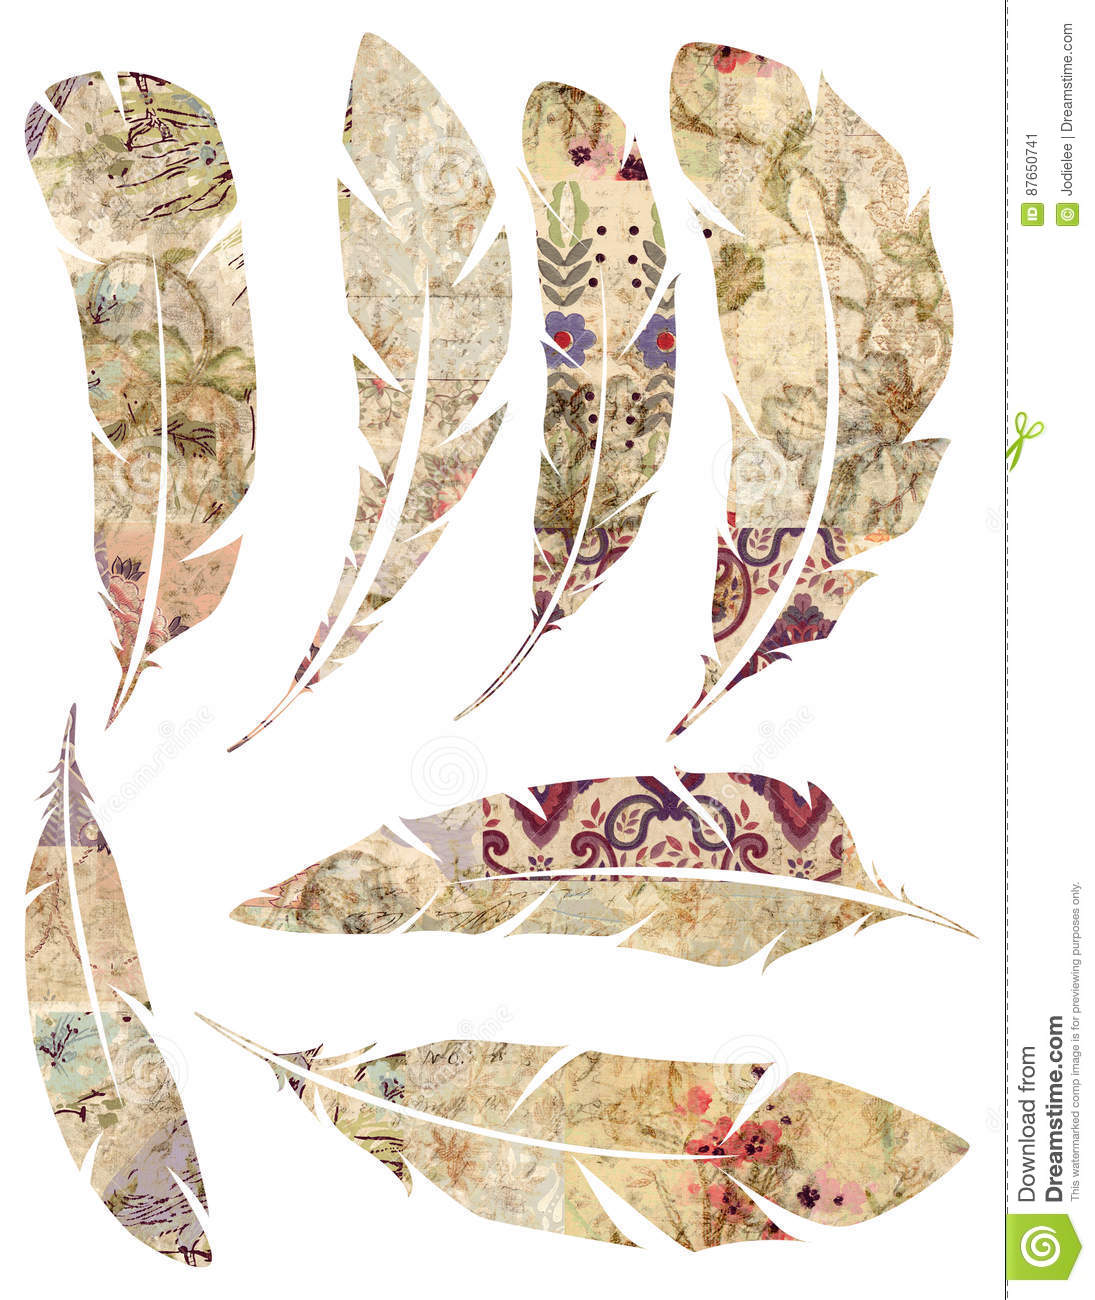 photo regarding Printable Feathers called Printable Fixed Of Grungy Watercolor Traditional Feathers Upon White